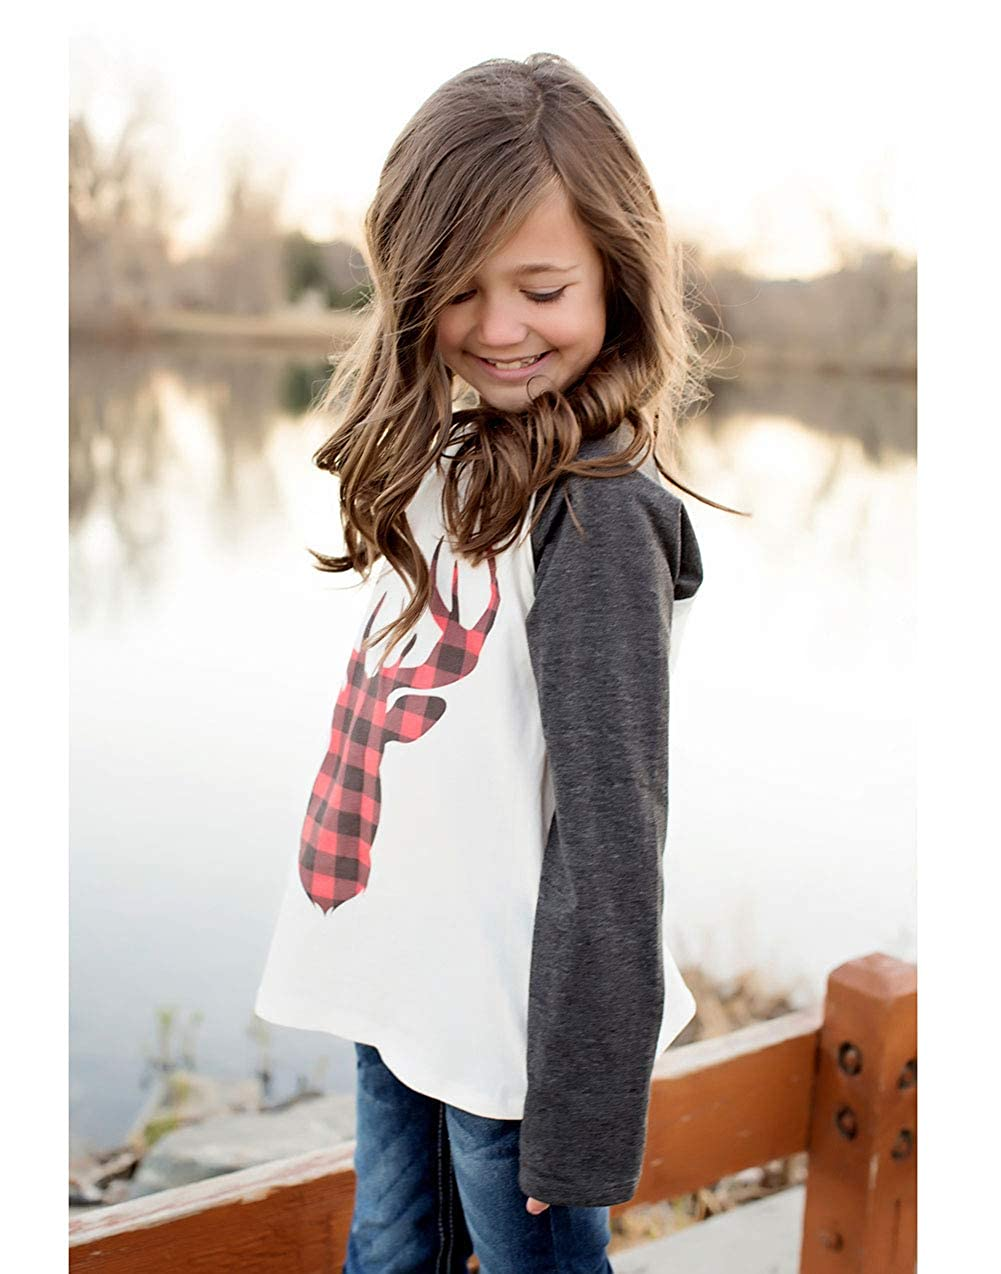 One Persent Mommy and Me Fashion Deer Print Long Sleeve T Shirt Blouse Tops Matching Family Clothes